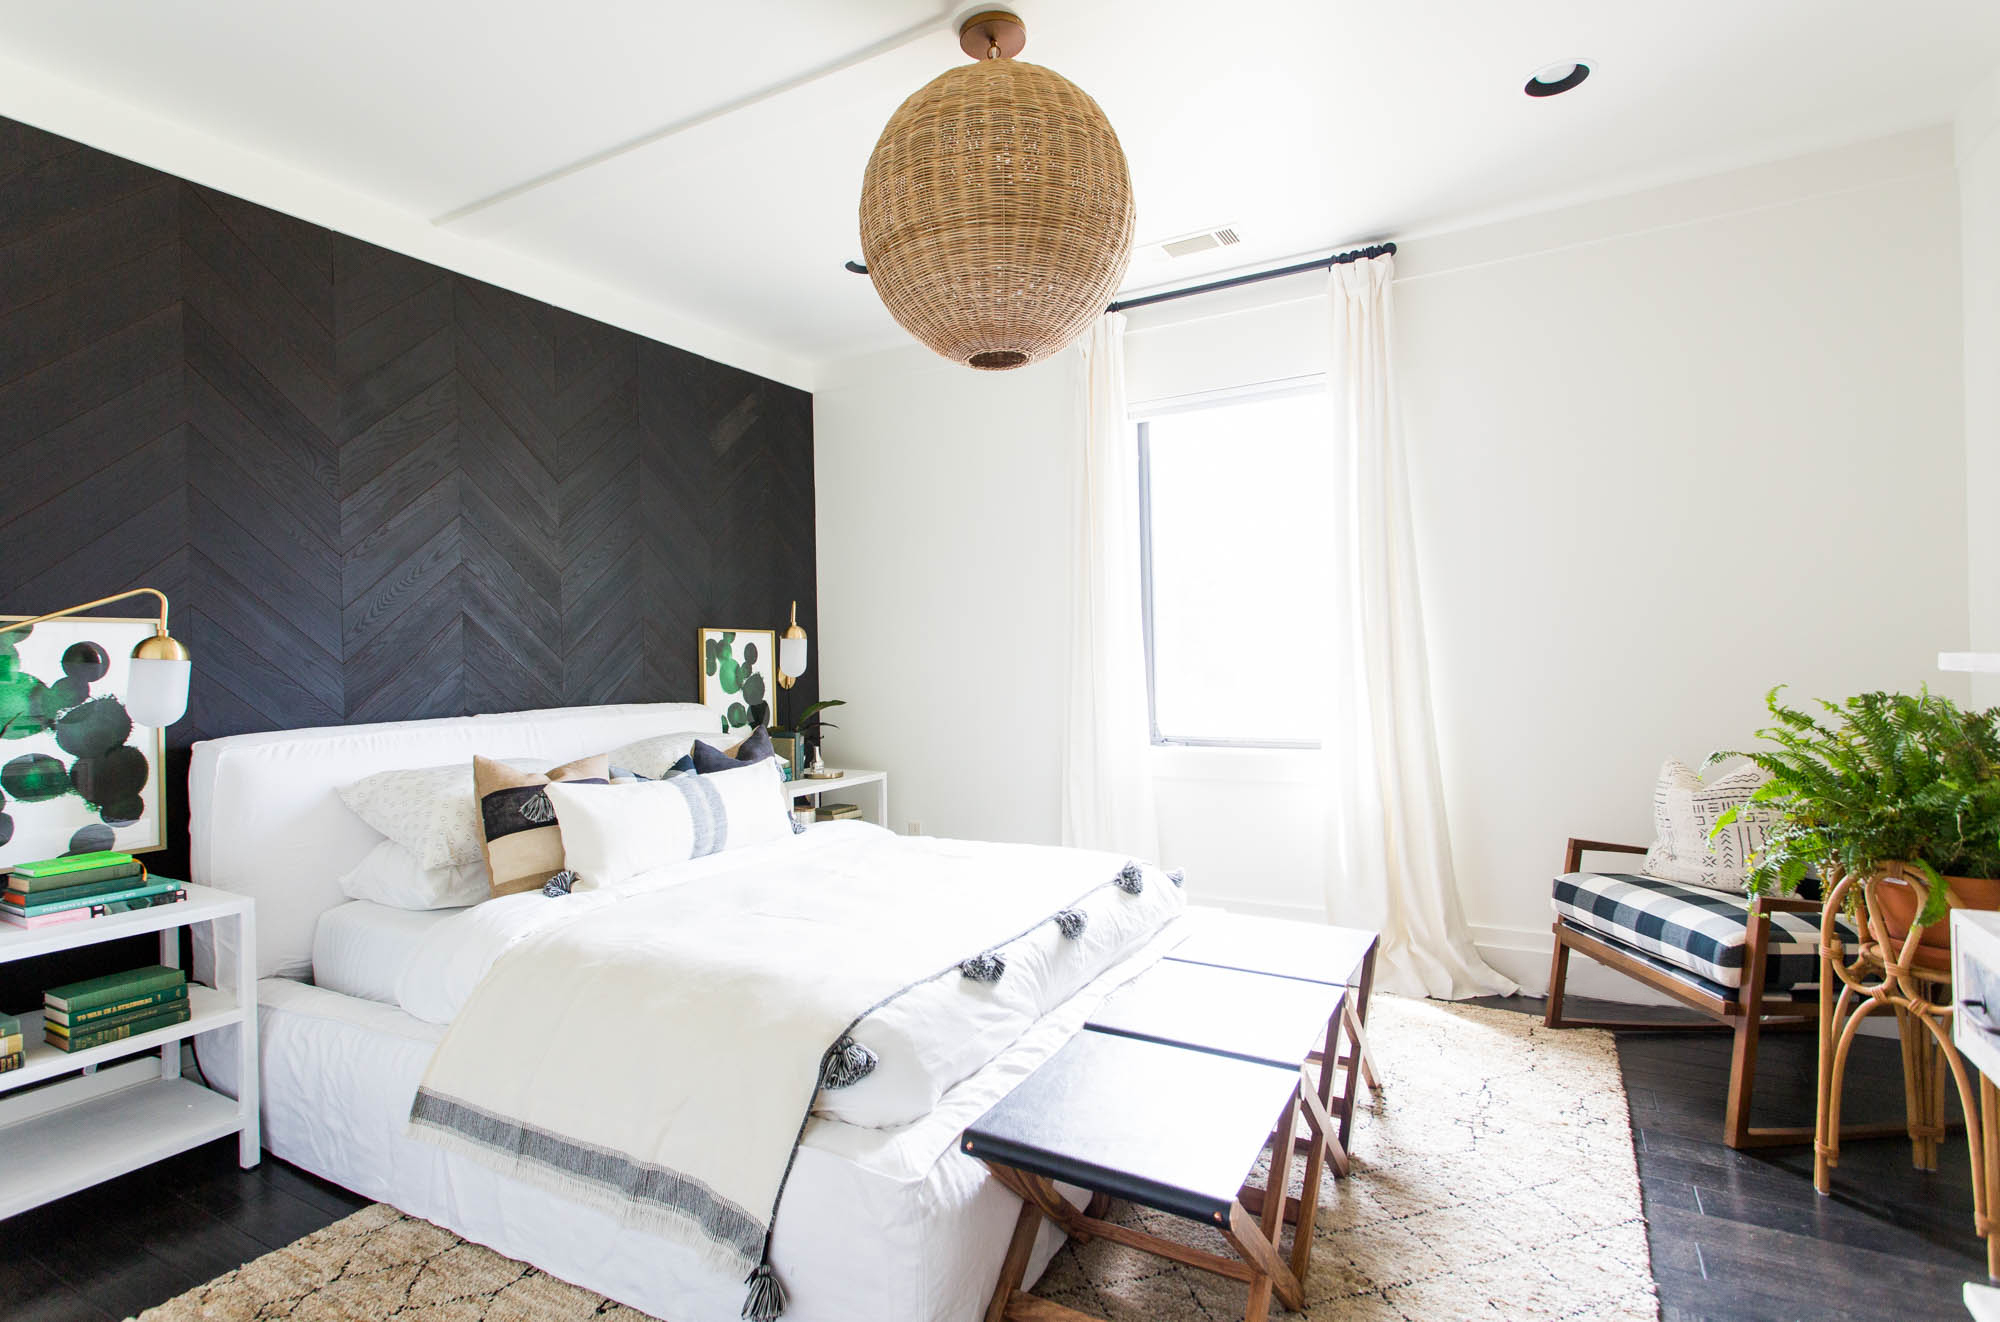 The Farmhouse Bedrooms Featured In Modern Farmhouse Sacramento inside 13 Smart Ways How to Make Modern Farmhouse Bedroom